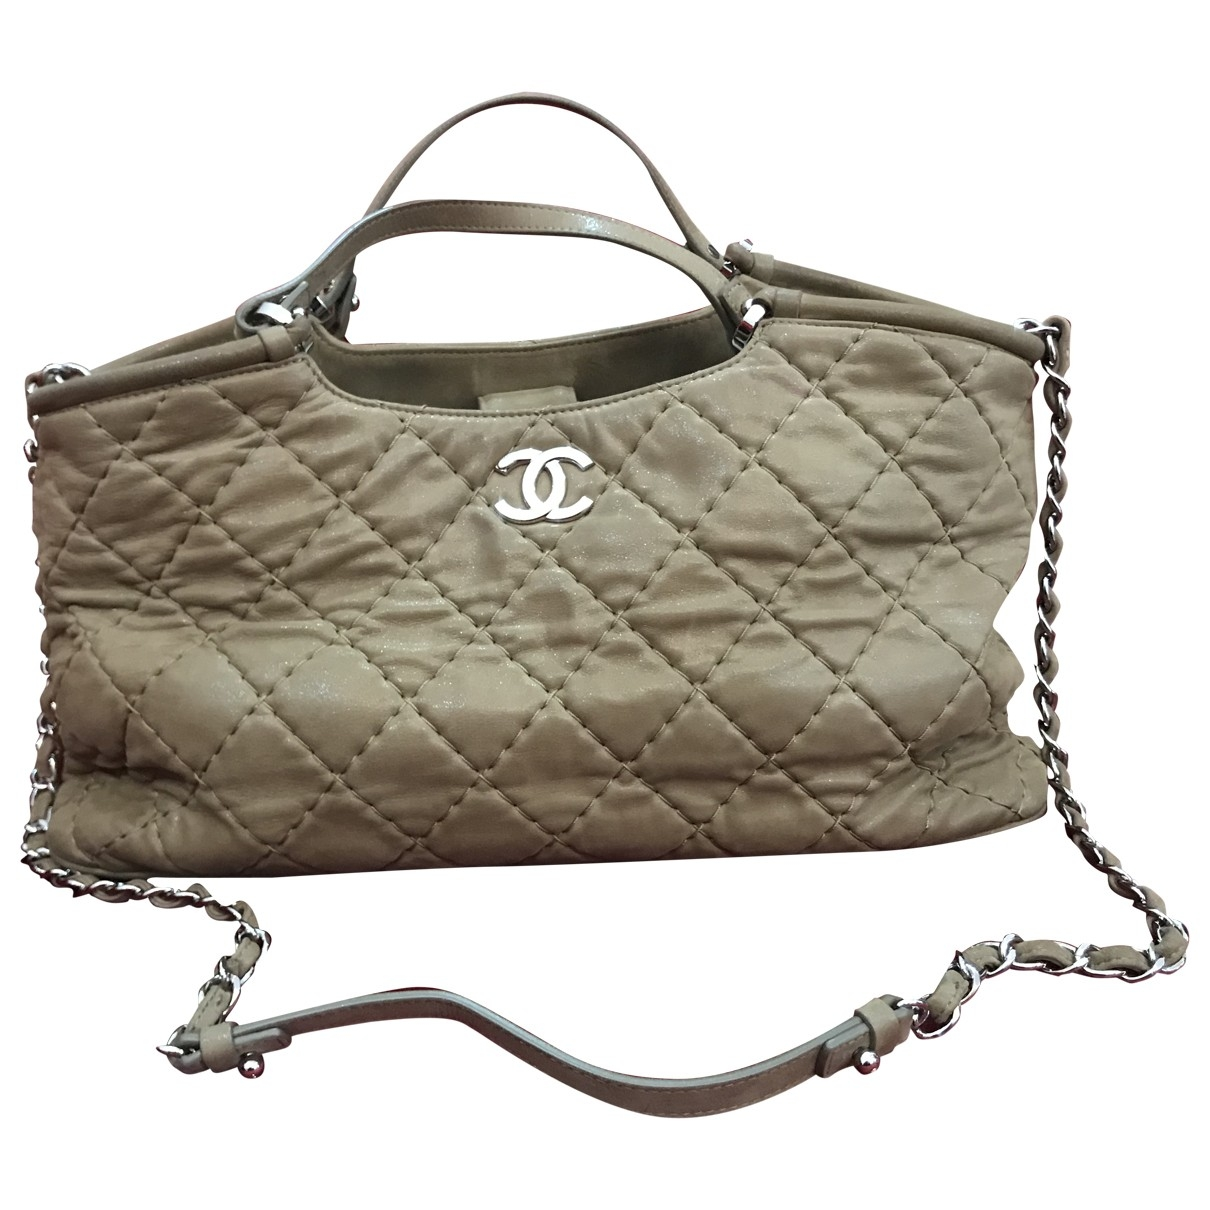 Chanel \N Beige Cloth handbag for Women \N